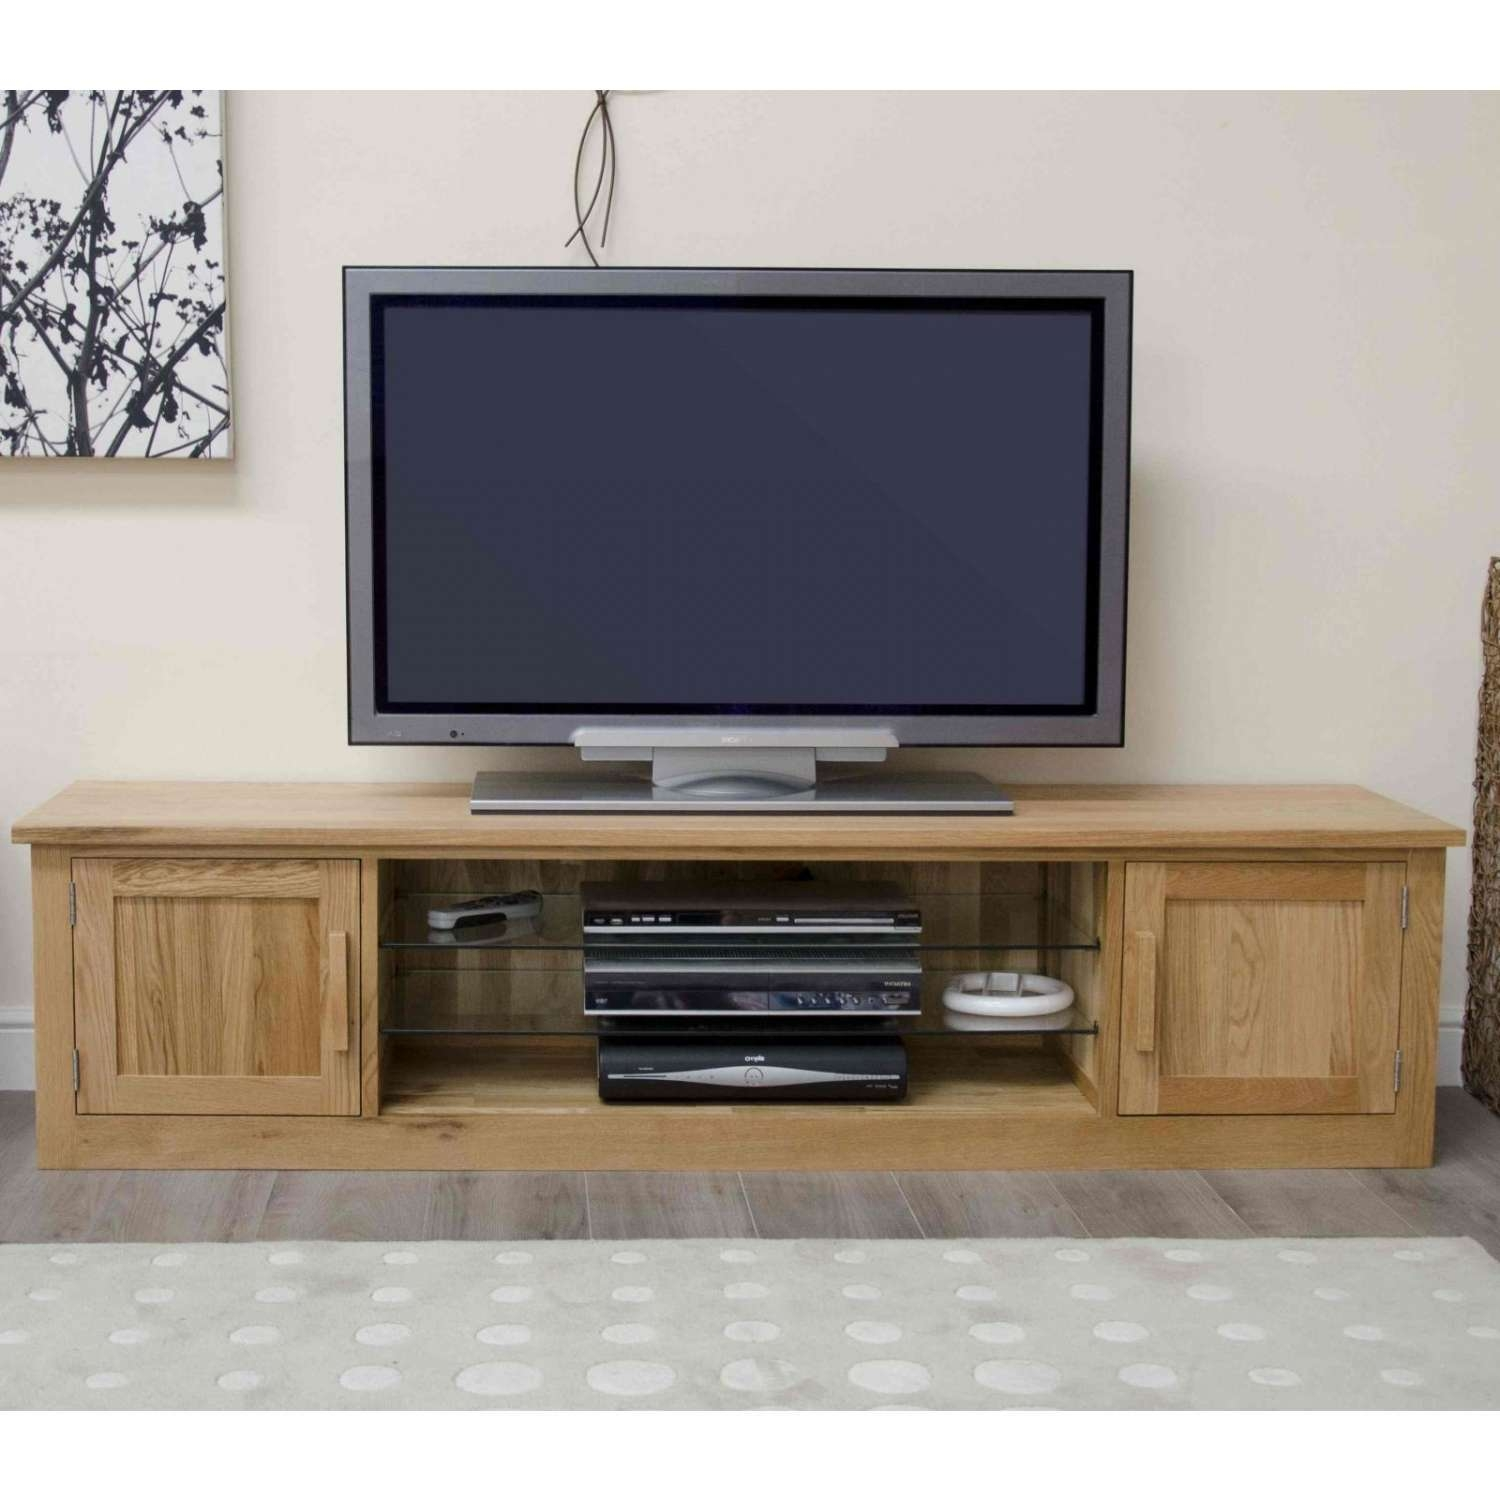 Arden Solid Oak Living Room Furniture Large Widescreen Tv Cabinet Inside Widescreen Tv Cabinets (View 8 of 20)